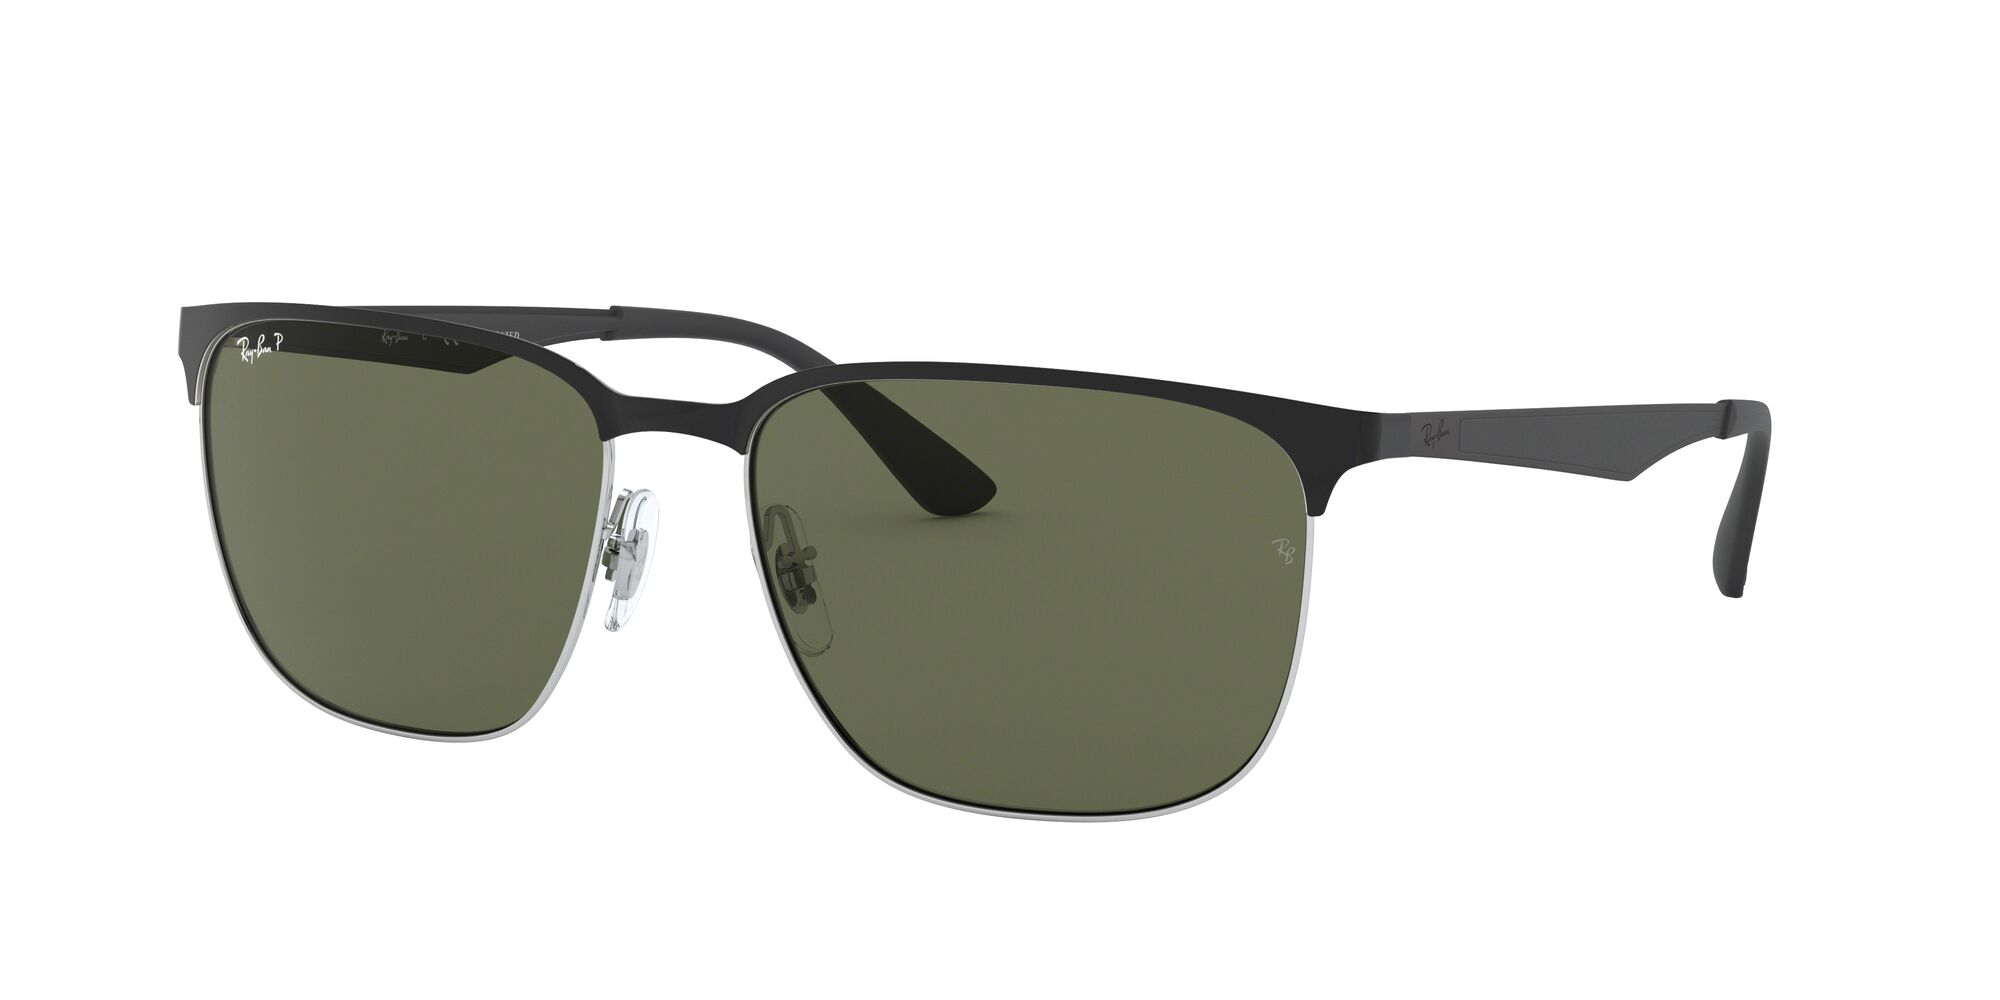 Angle_Left01 Ray-Ban Ray-Ban 0RB3569 90049A 59/17 Zilver/Groen